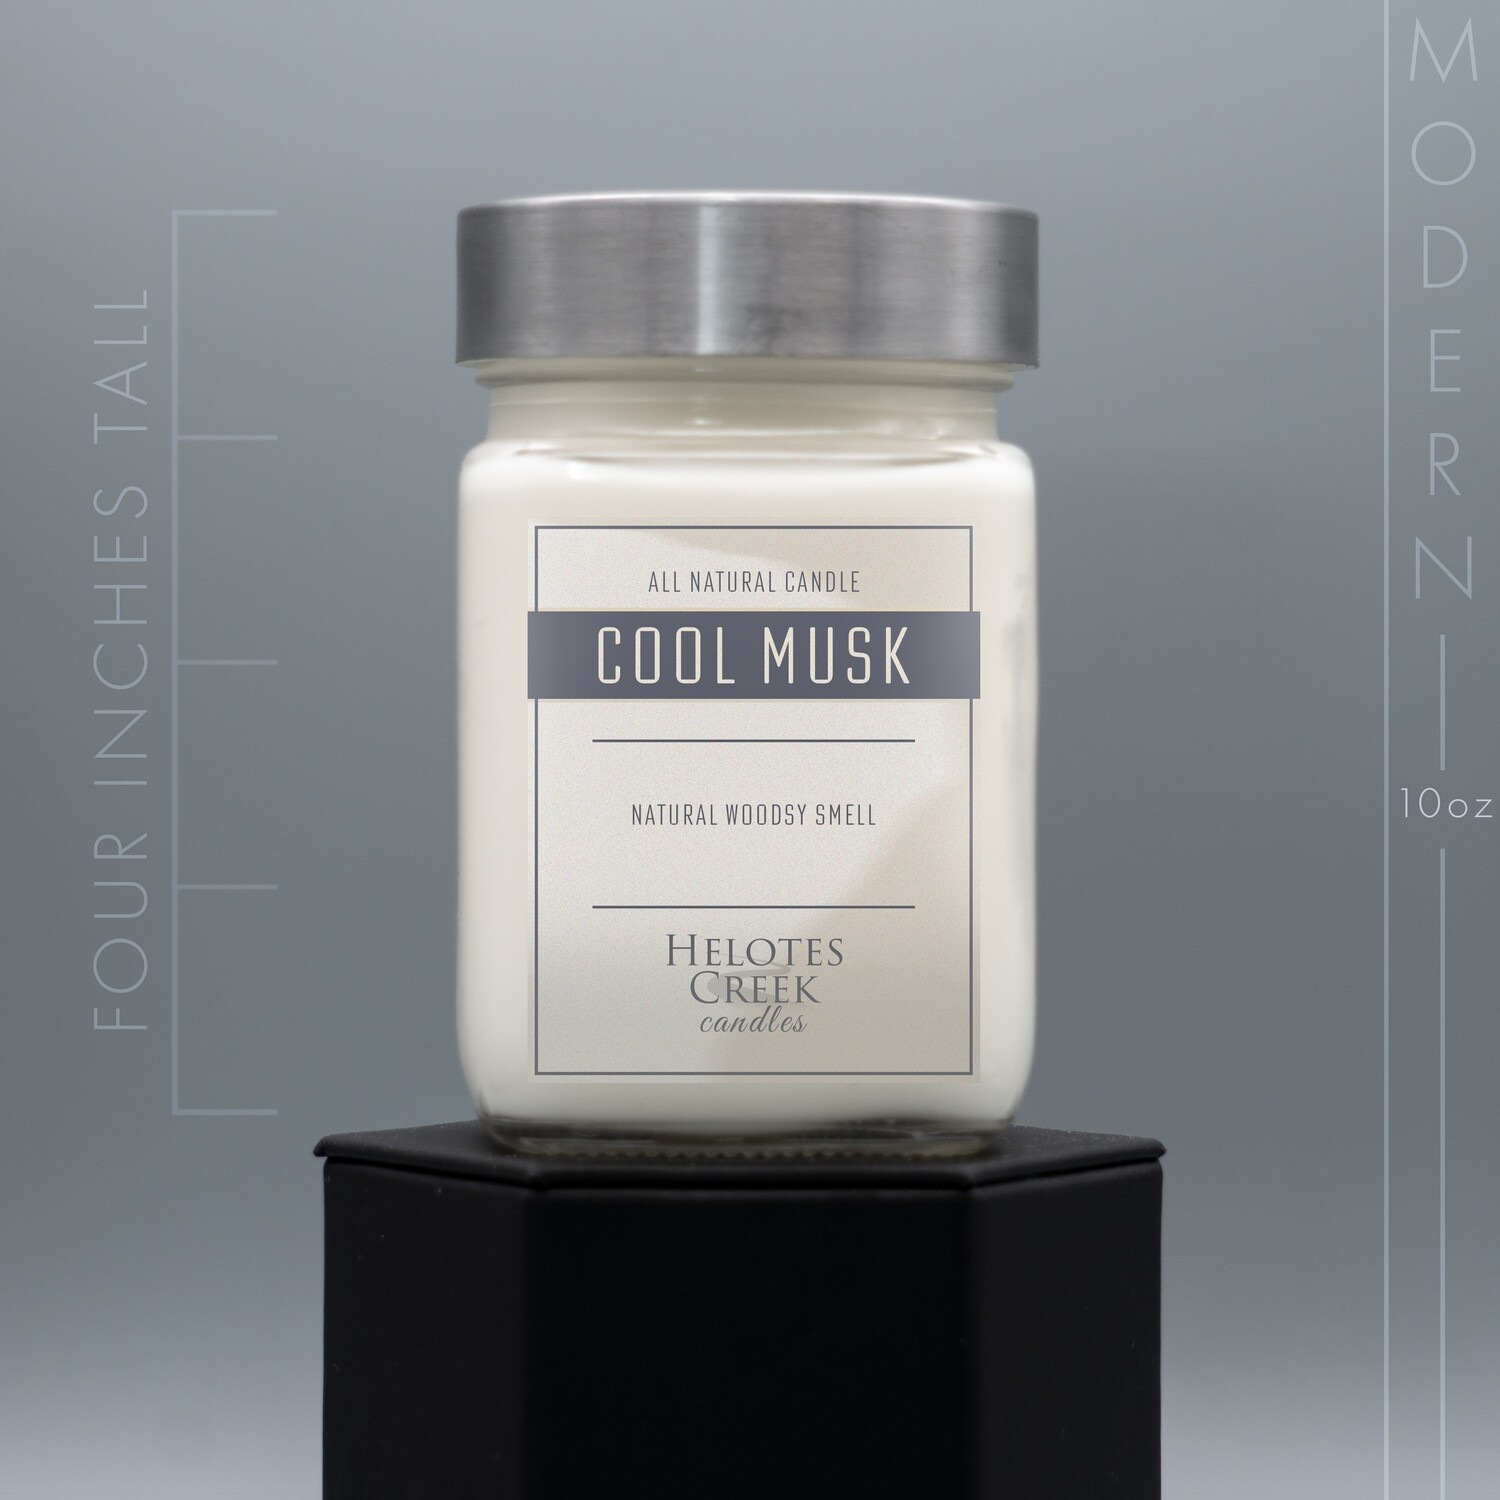 10 oz Cool Musk Modern Candle in Glass Jar